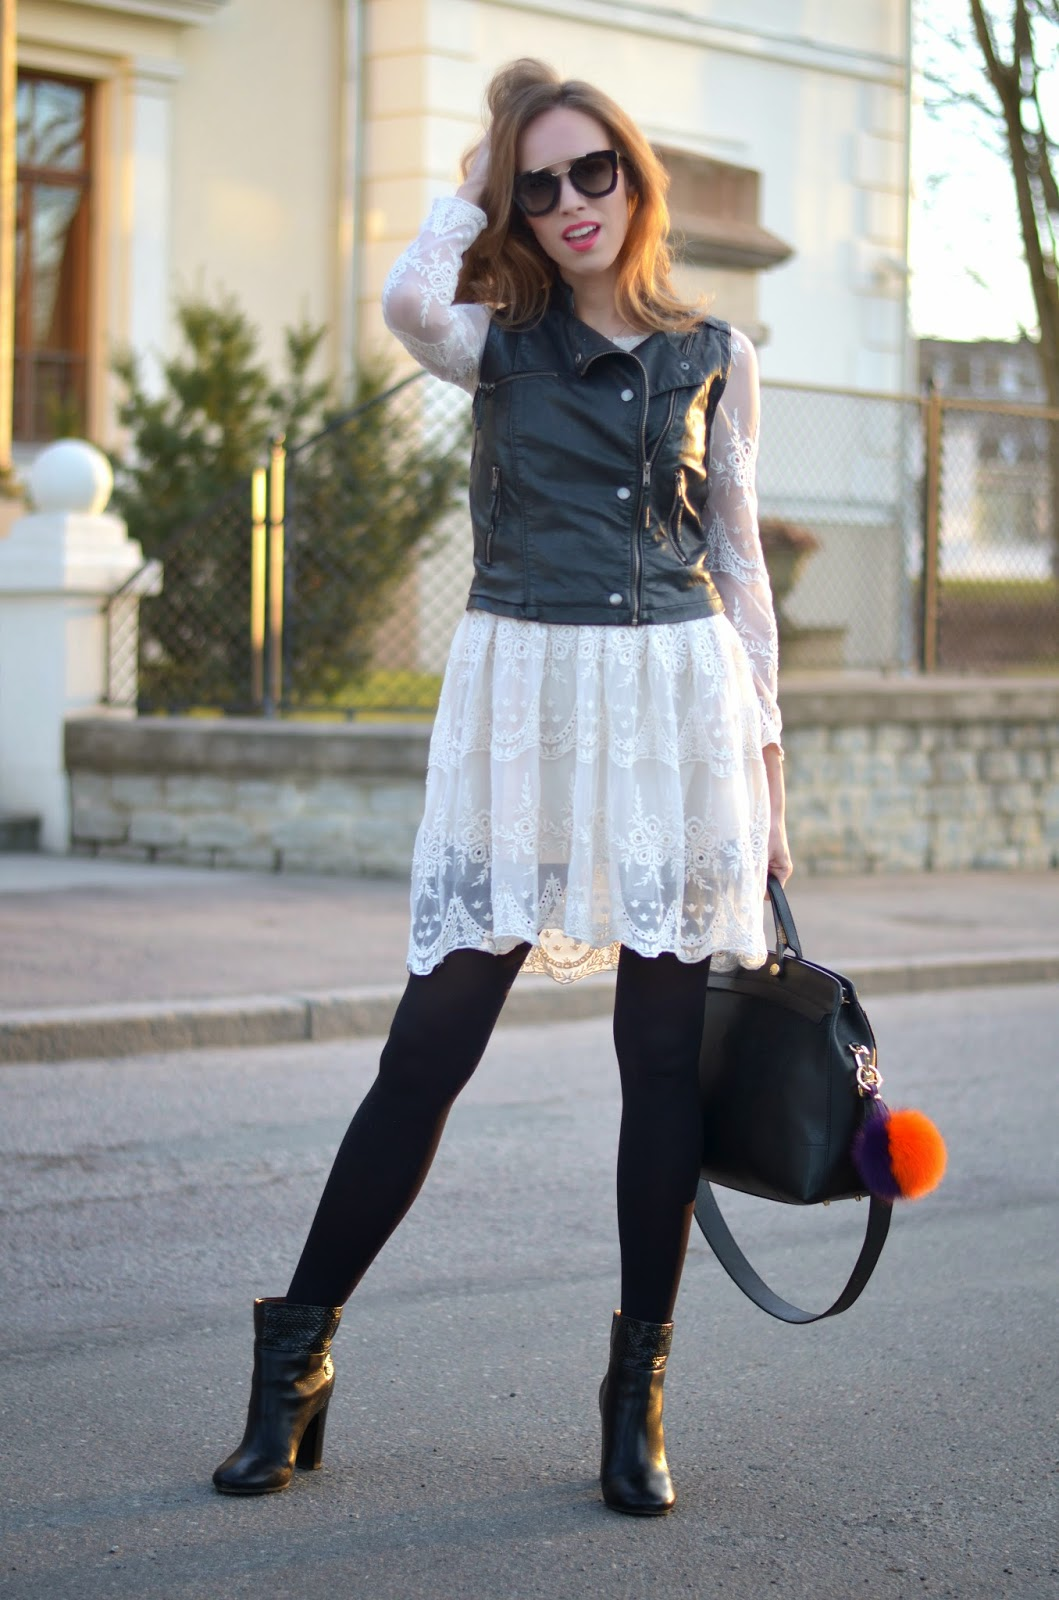 black-white-contrast-outfit-leather-lace kristjaana mere